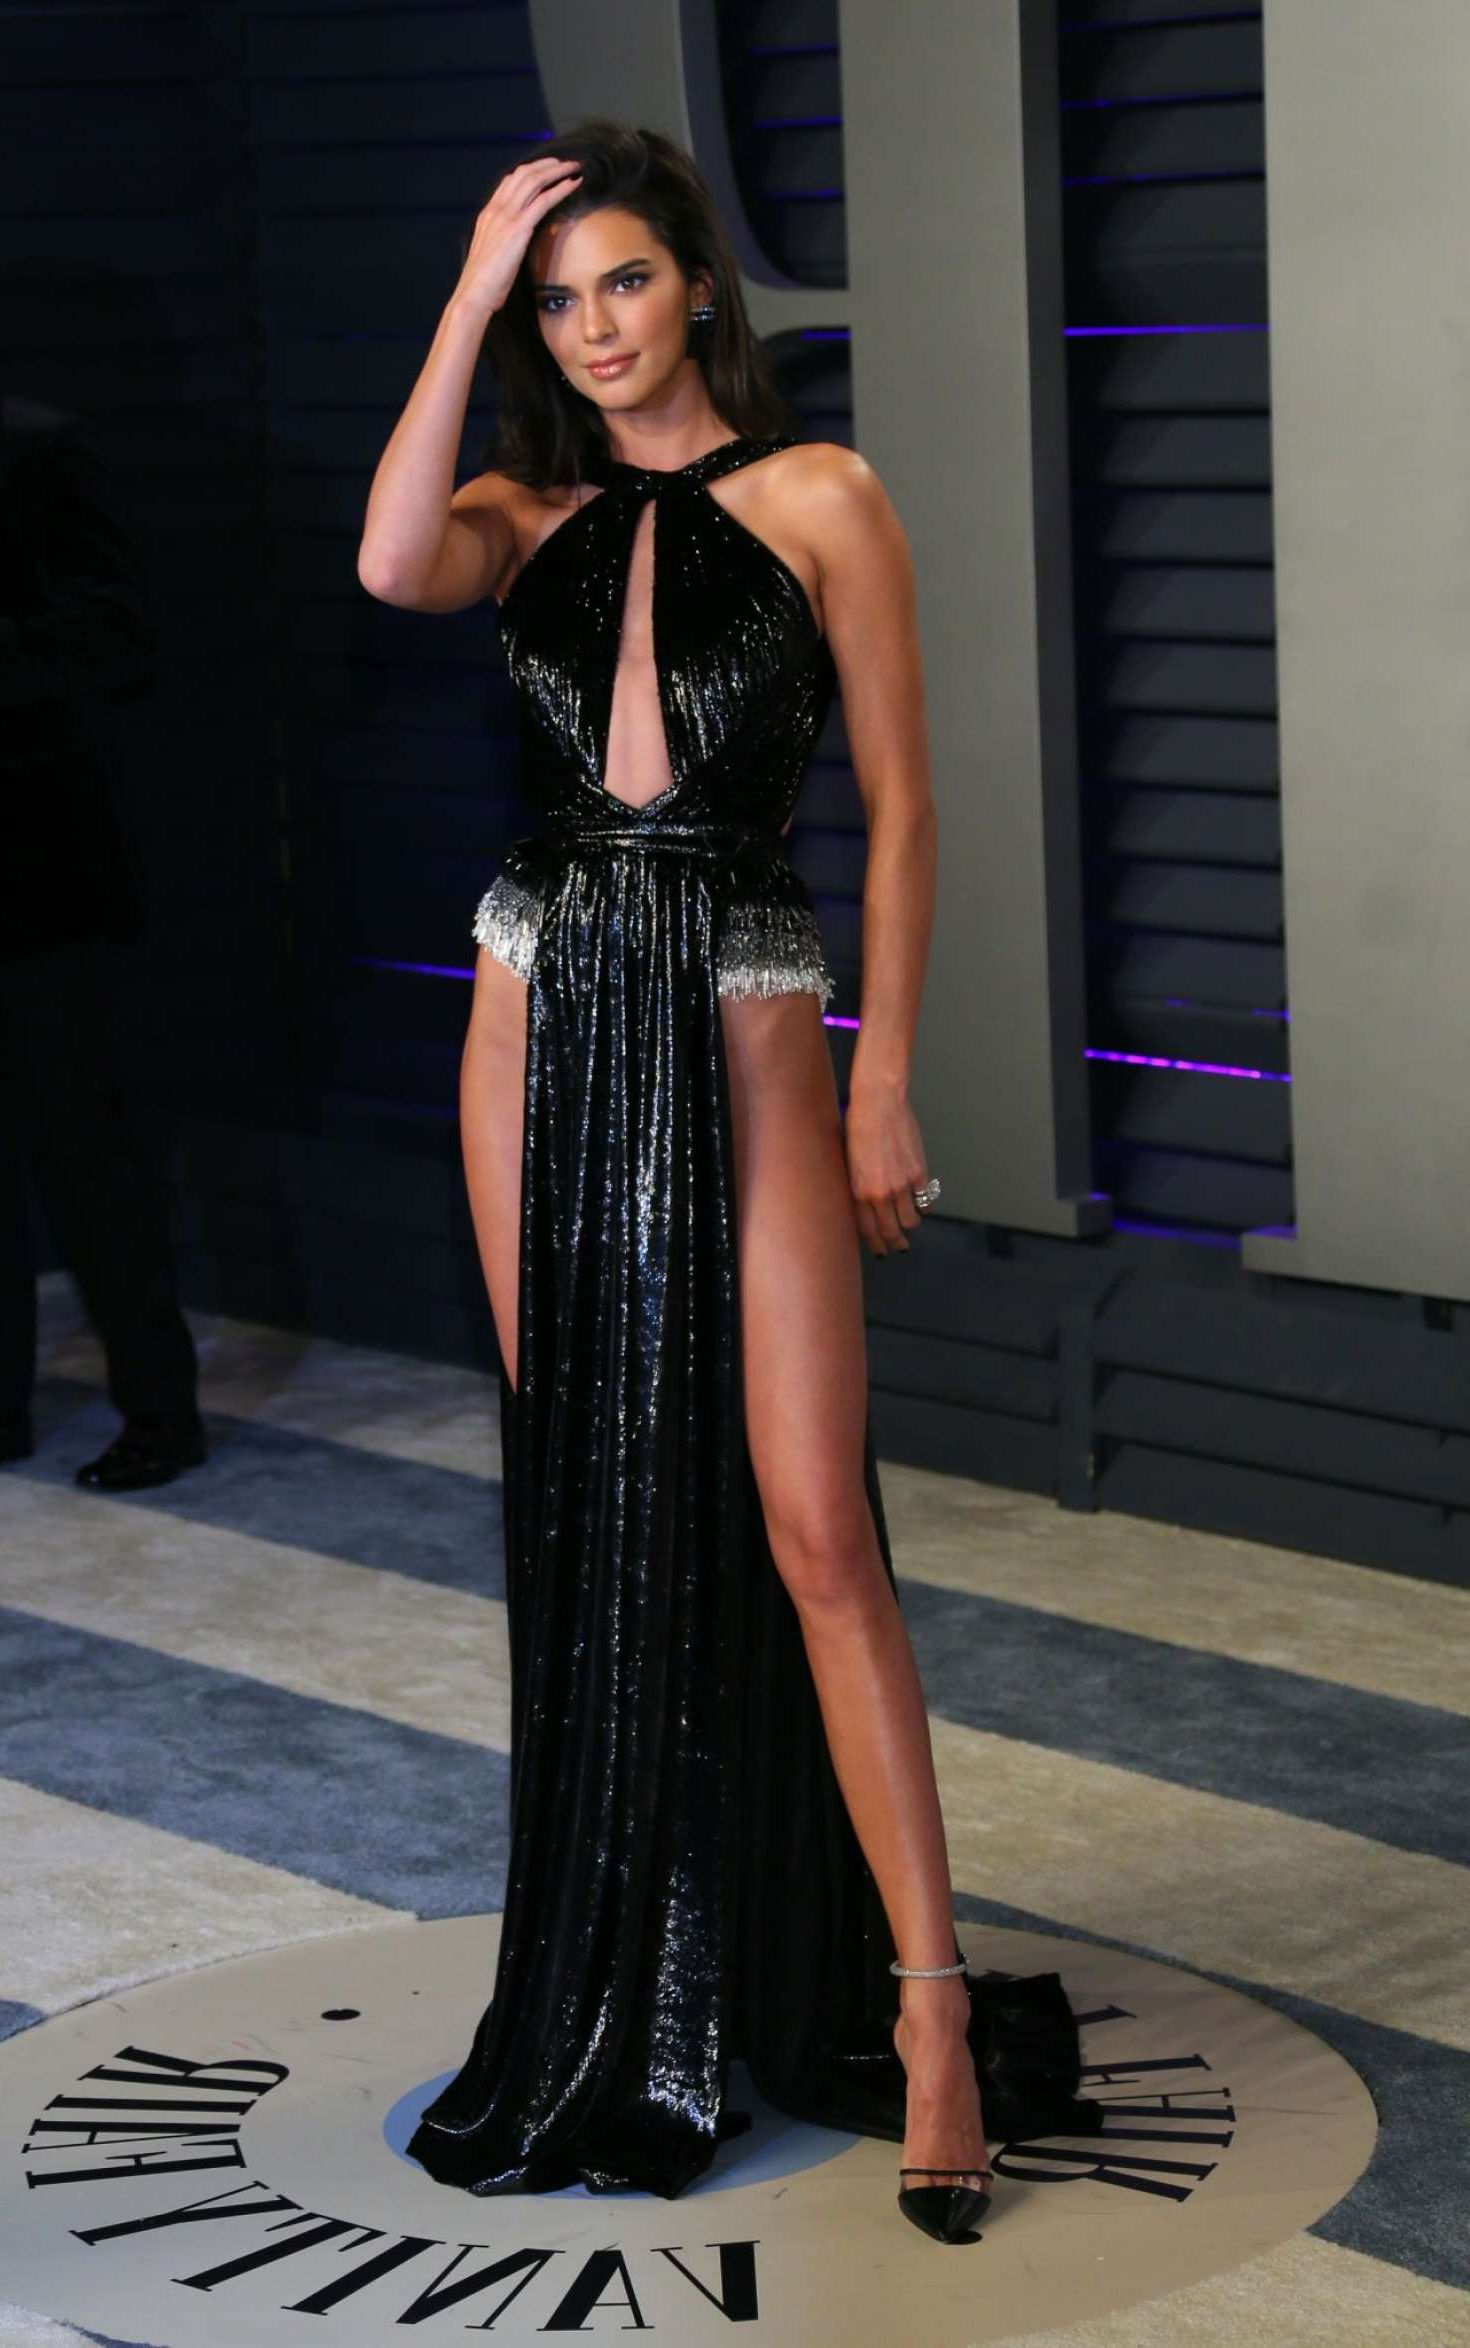 amazing model Kendall Jenner at Vanity Fair Oscar Party in Beverly Hills, 2019